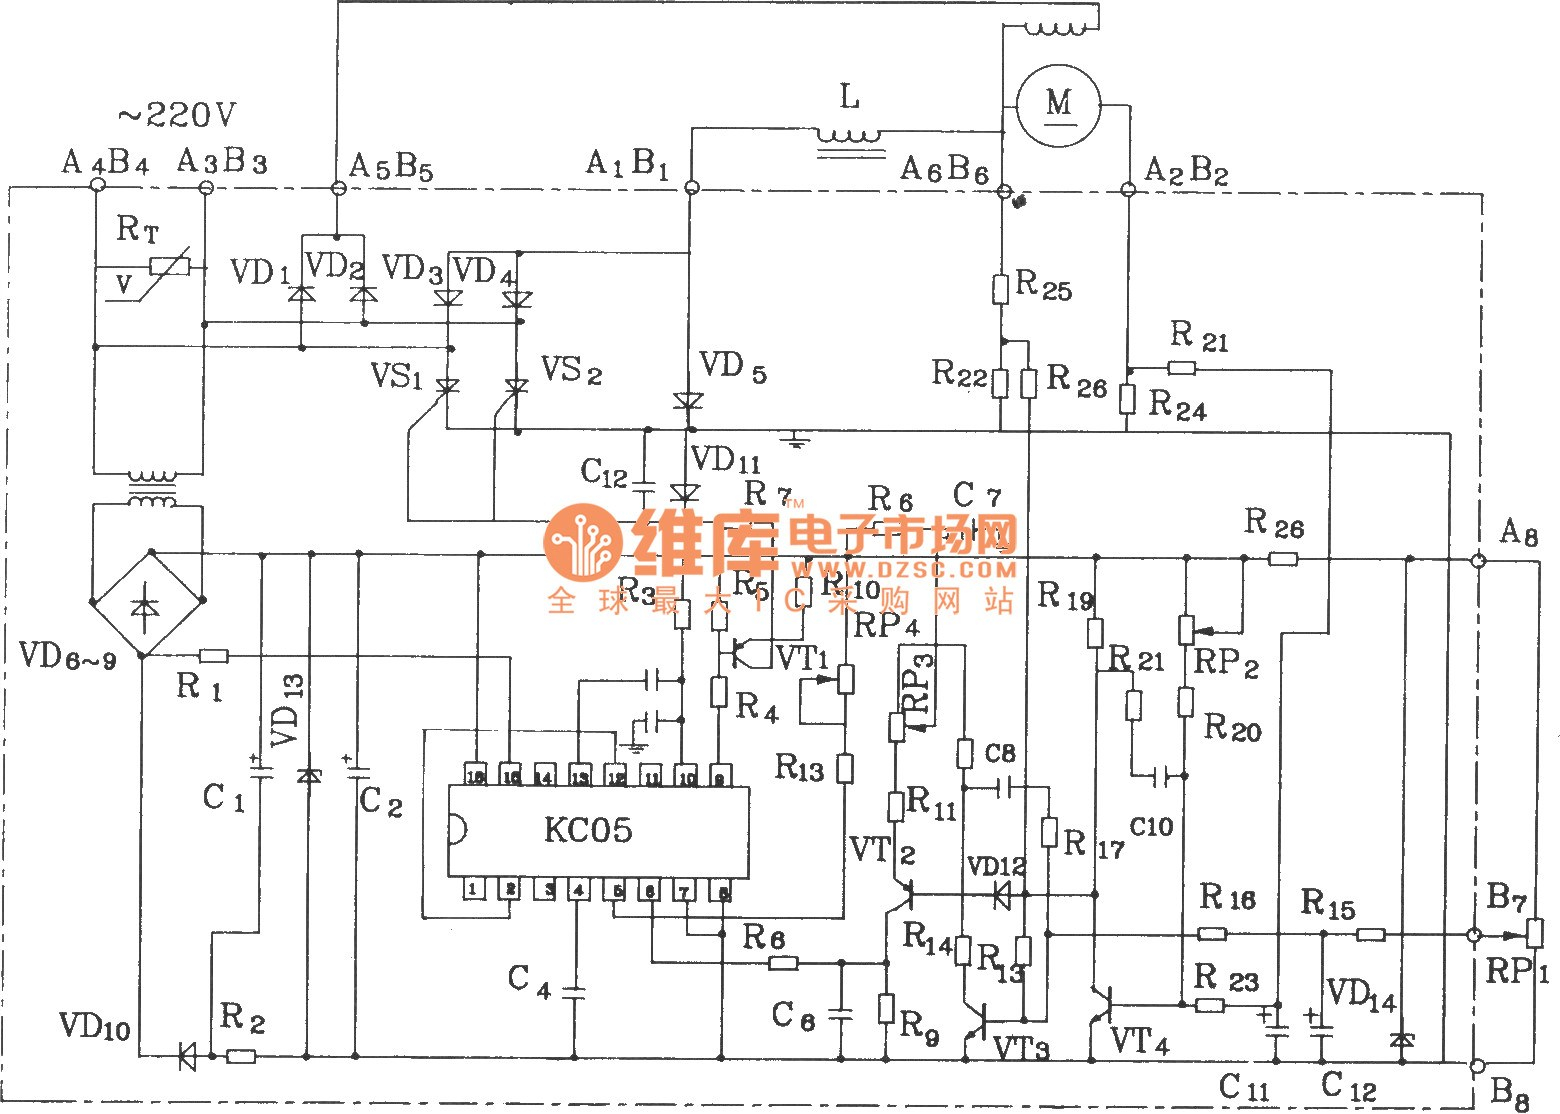 hight resolution of electrical control panel wiring diagram pdf dc motor starter wiring diagram free picture example electrical